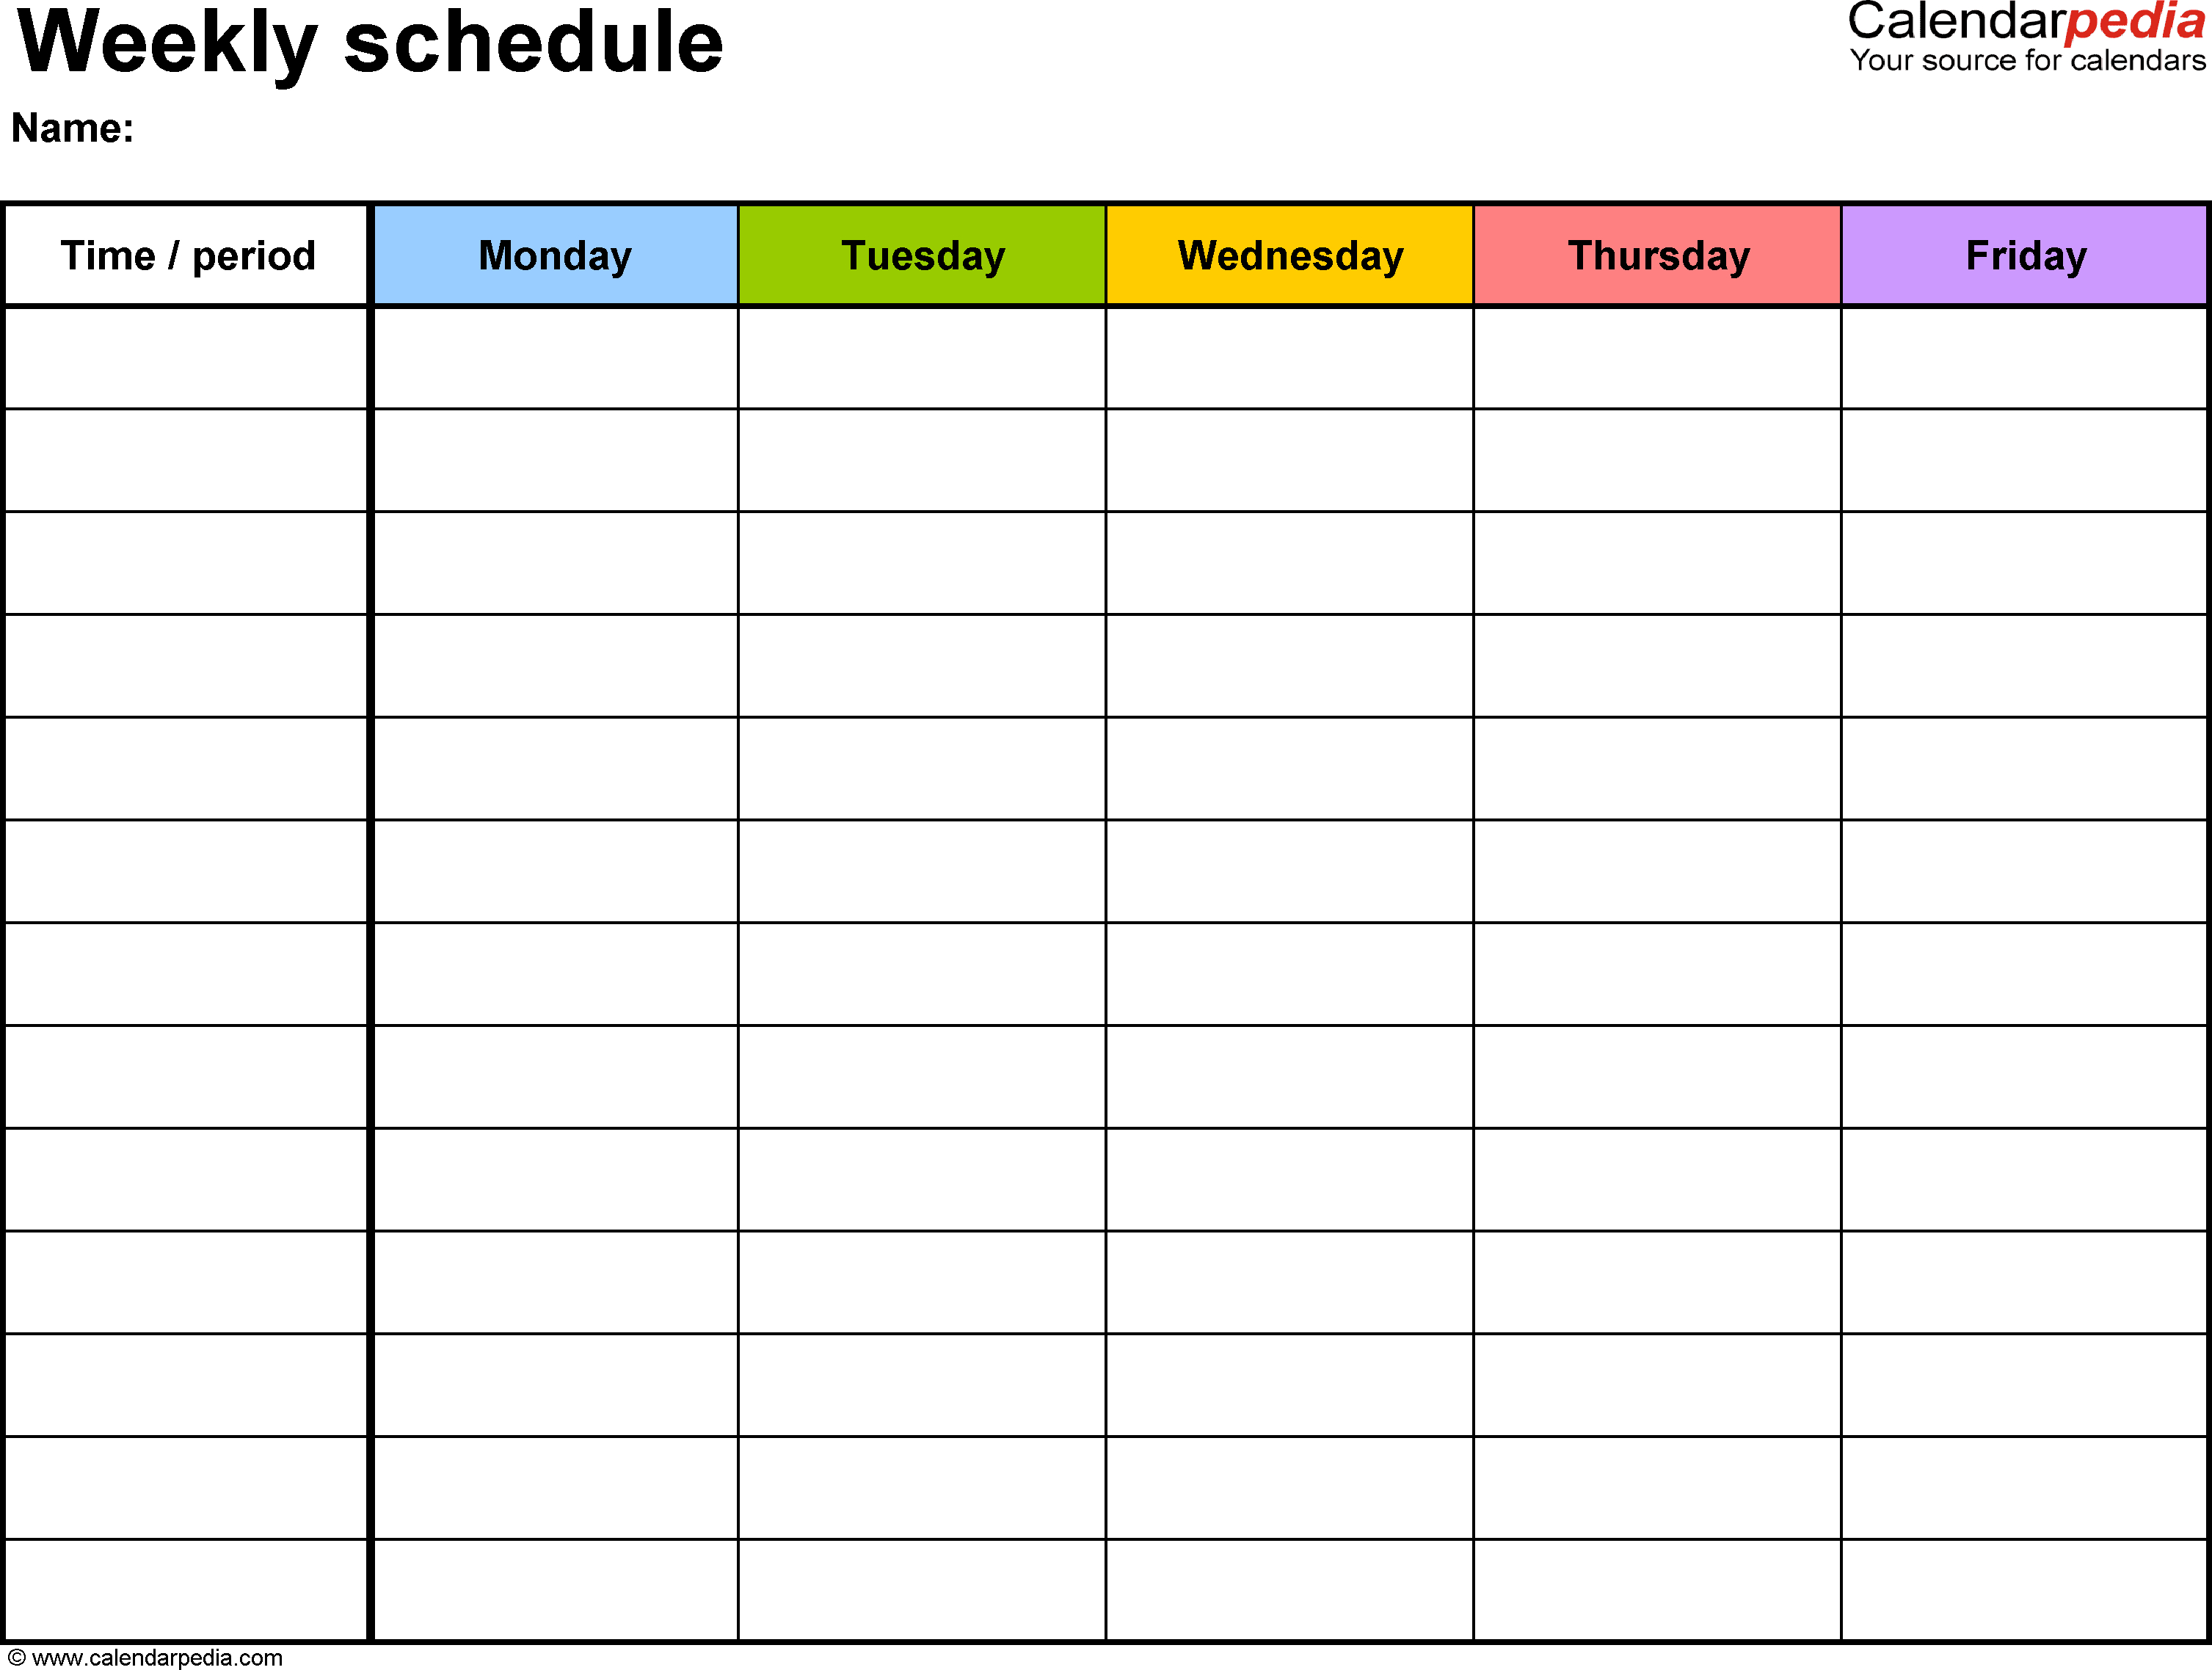 Free Weekly Schedule Templates For Pdf - 18 Templates - Free Printable Schedule